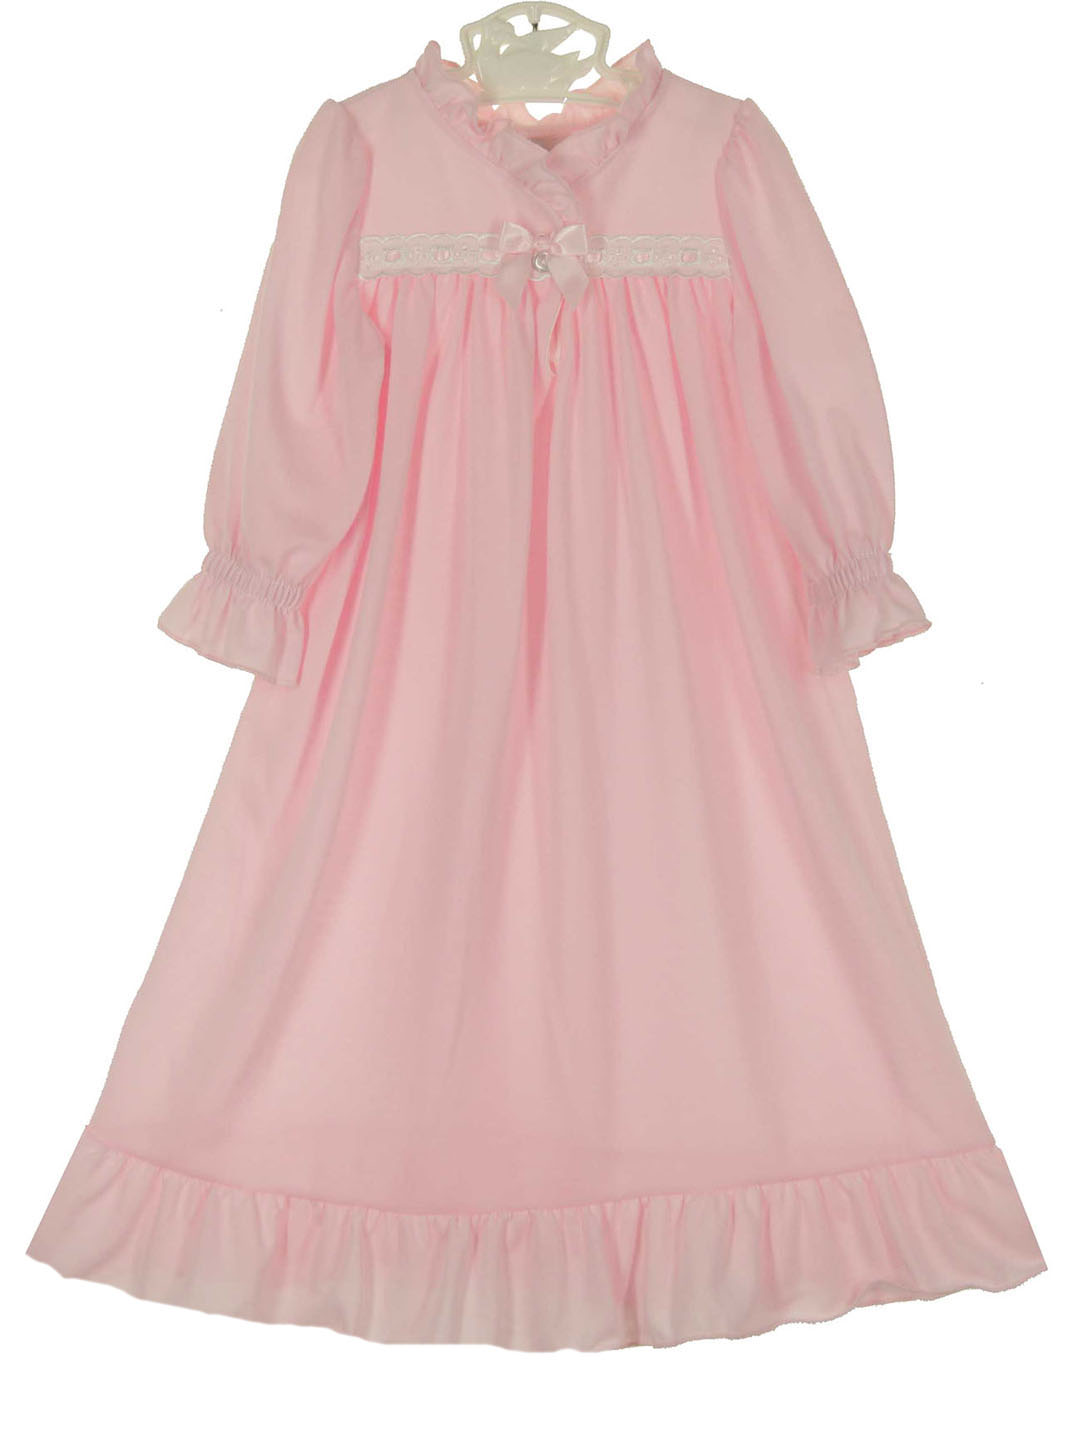 Pink Knit Nightgown With Pink Ribbon Pink Nightgown For